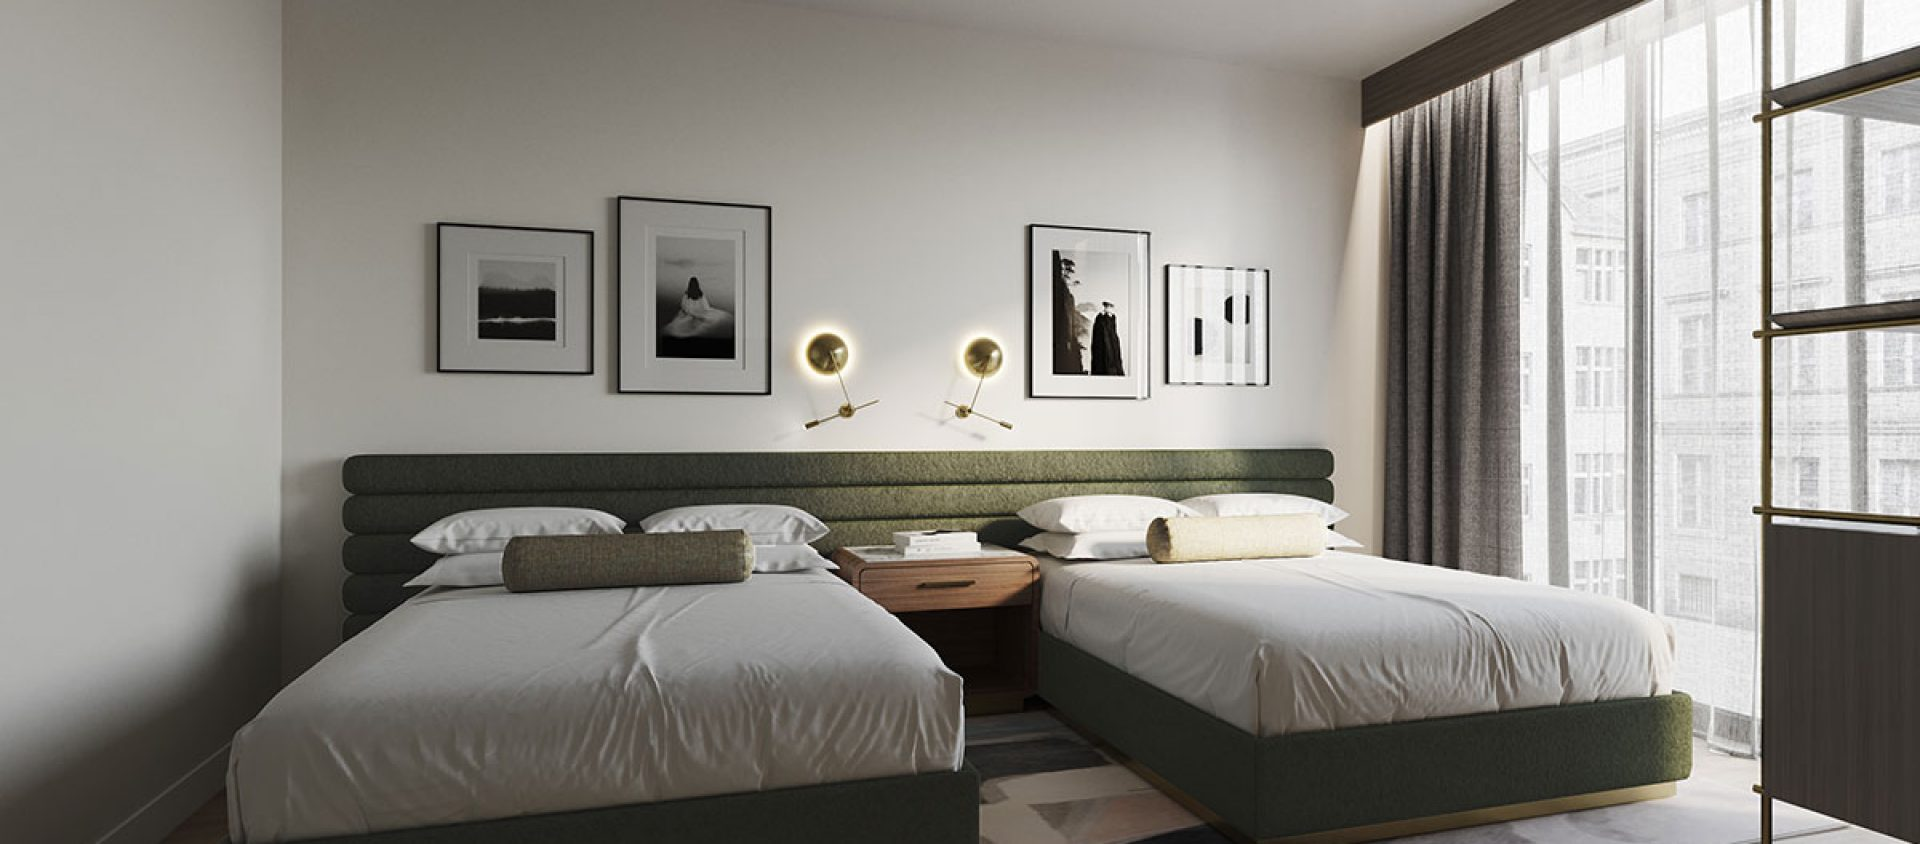 The Thompson Hotel Houston: Get a Preview